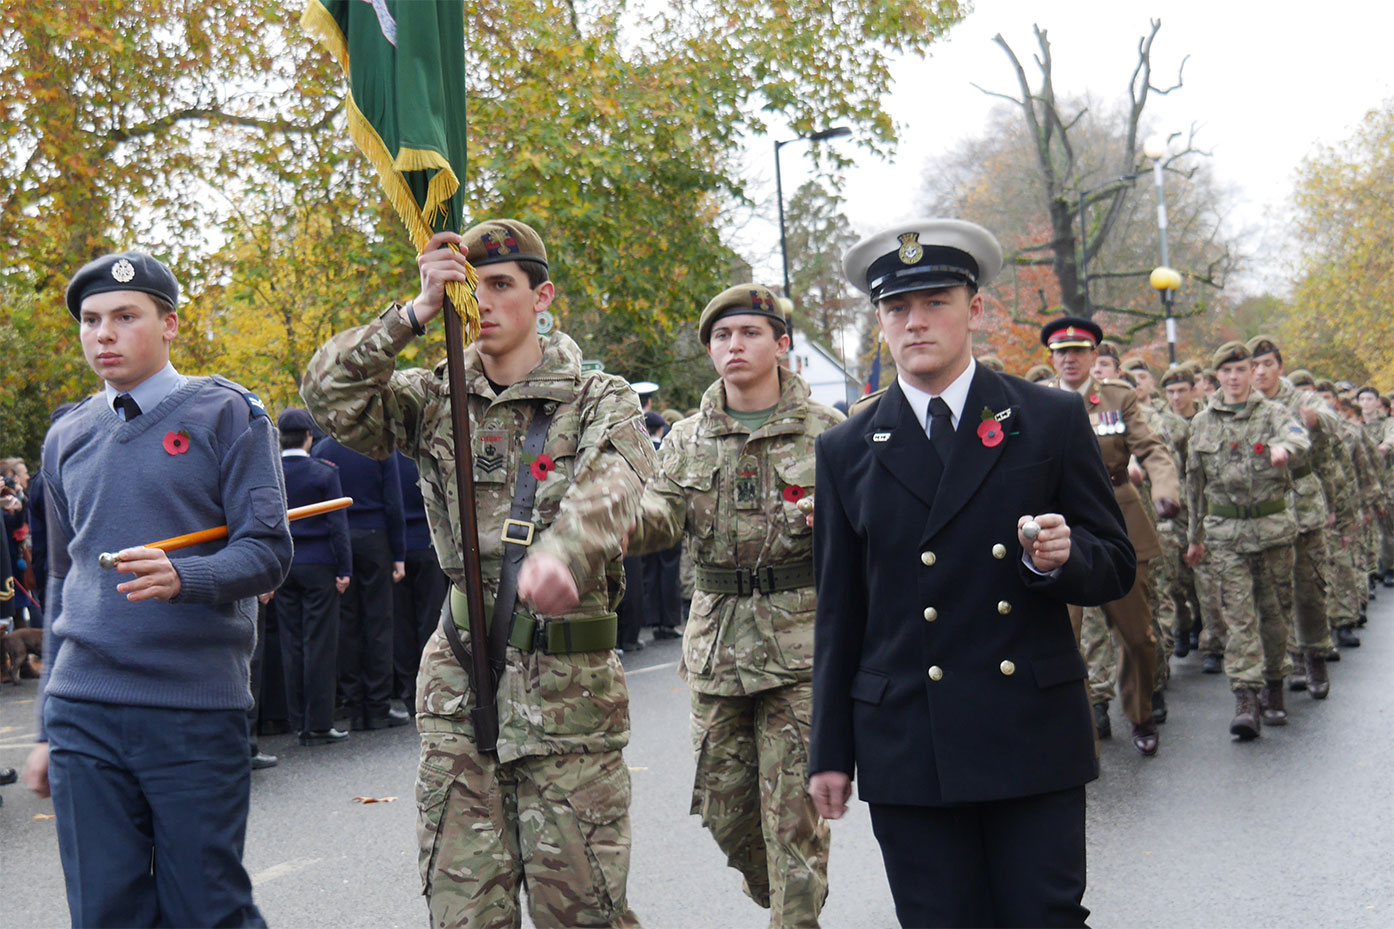 Armistice Day is marked at the Old College War Memorial